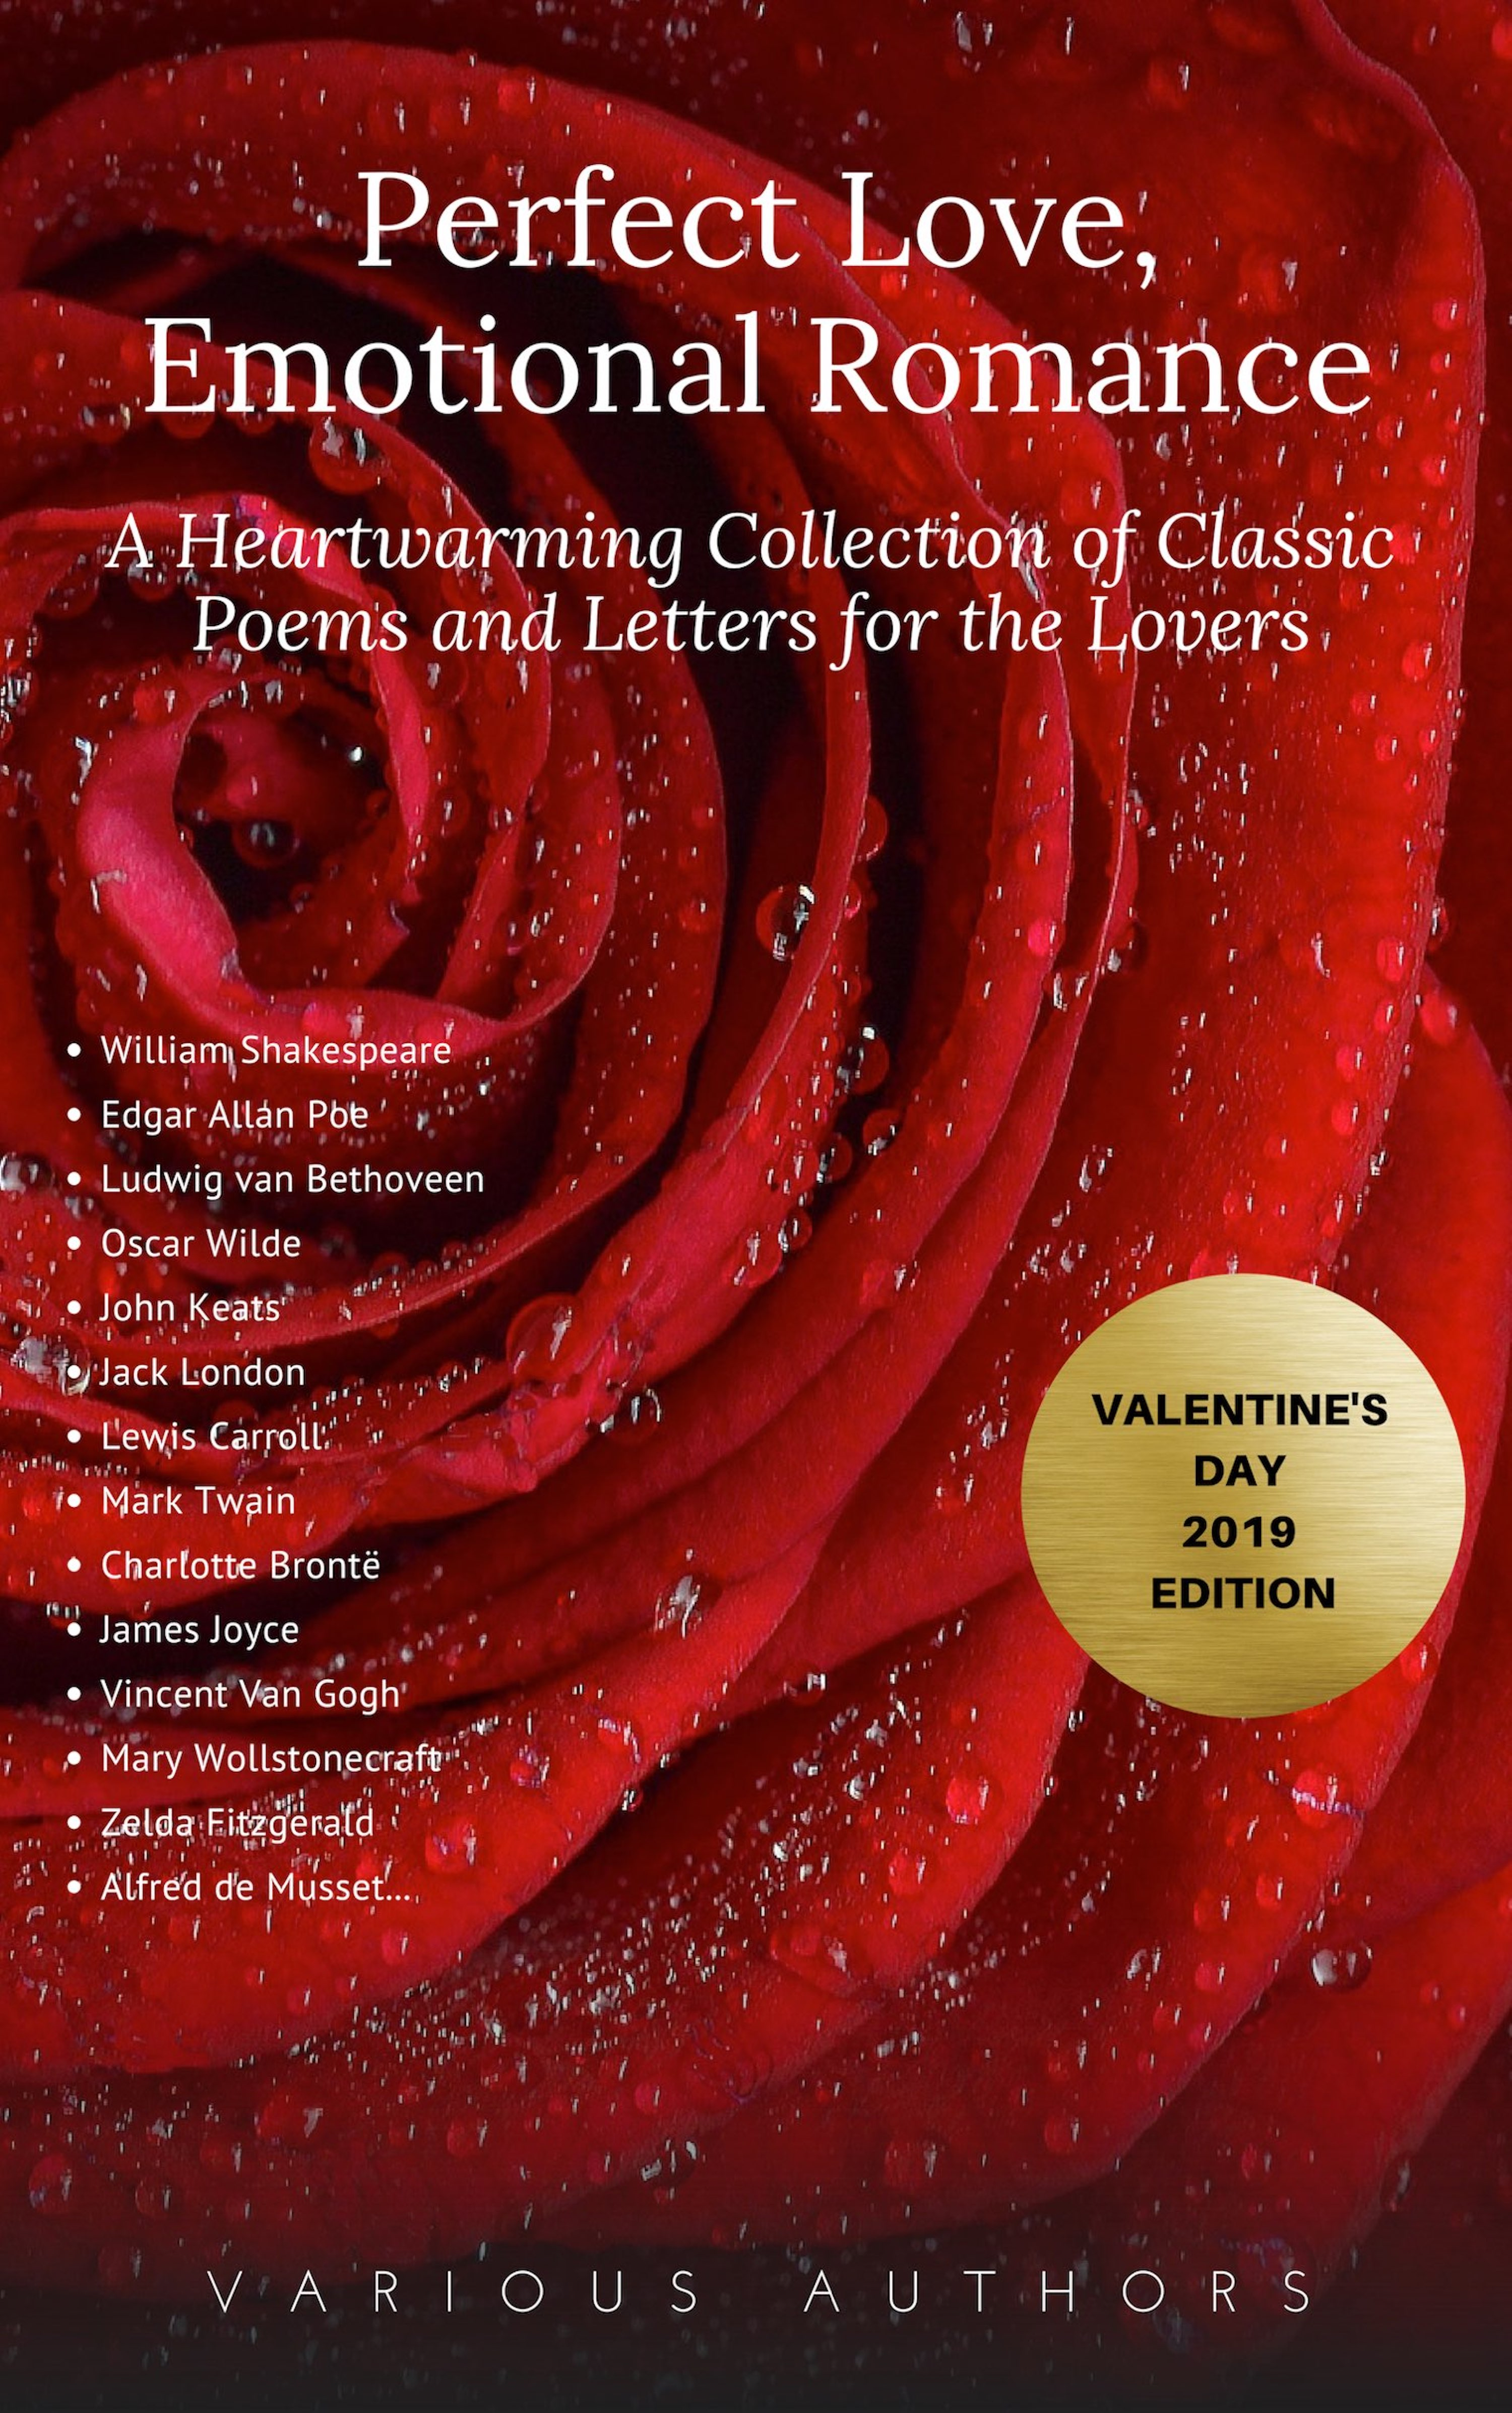 perfect love emotional romance a heartwarming collection of 100 classic poems and letters for the lovers valentines day 2019 edition